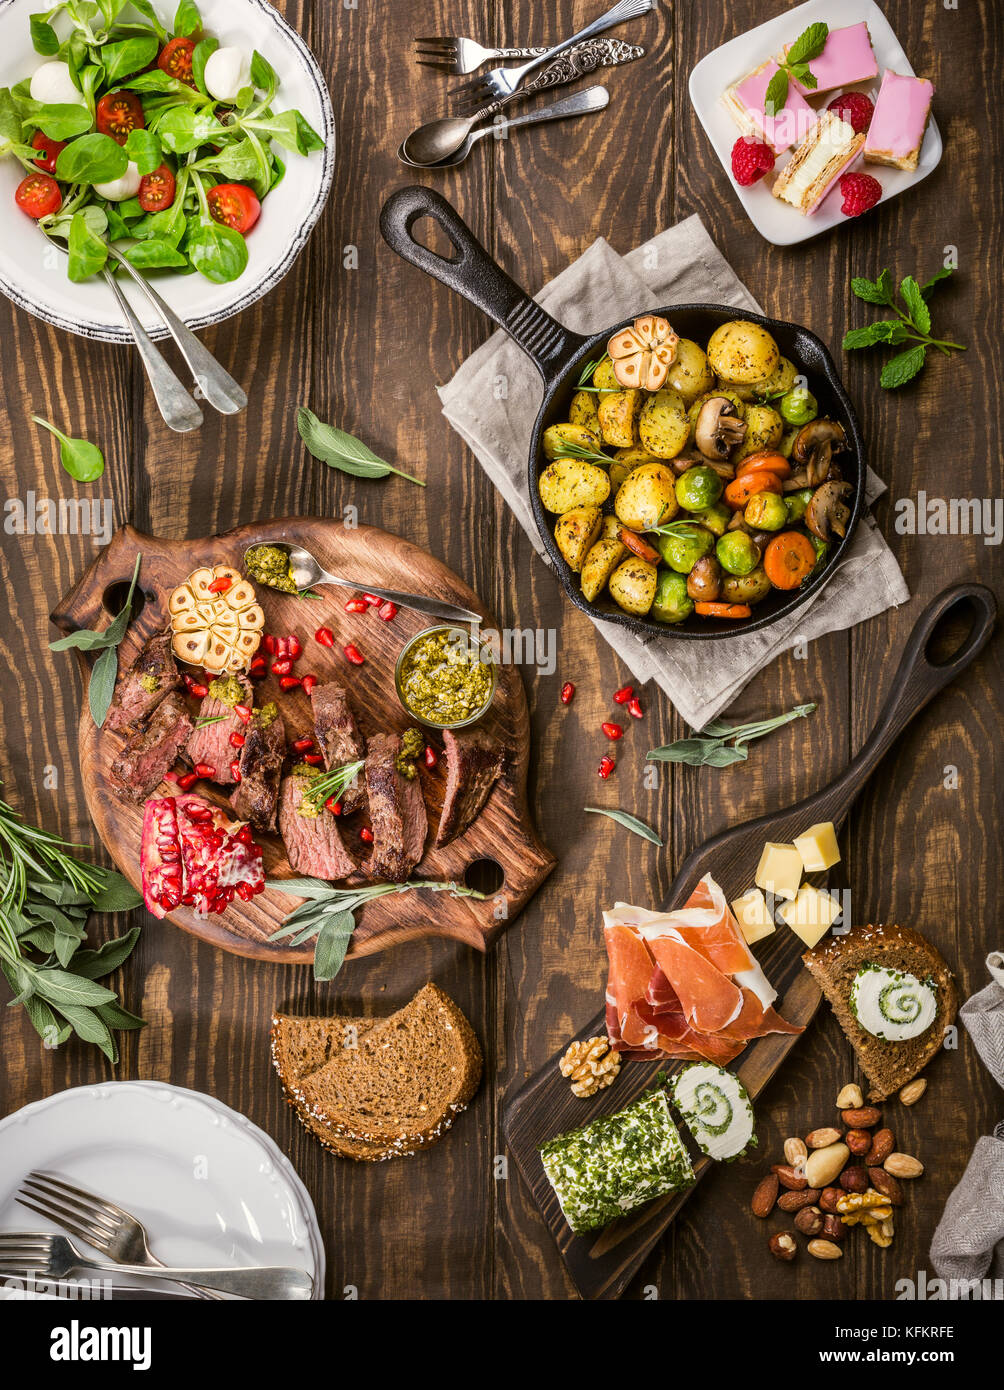 Delicious dinner table - Stock Image